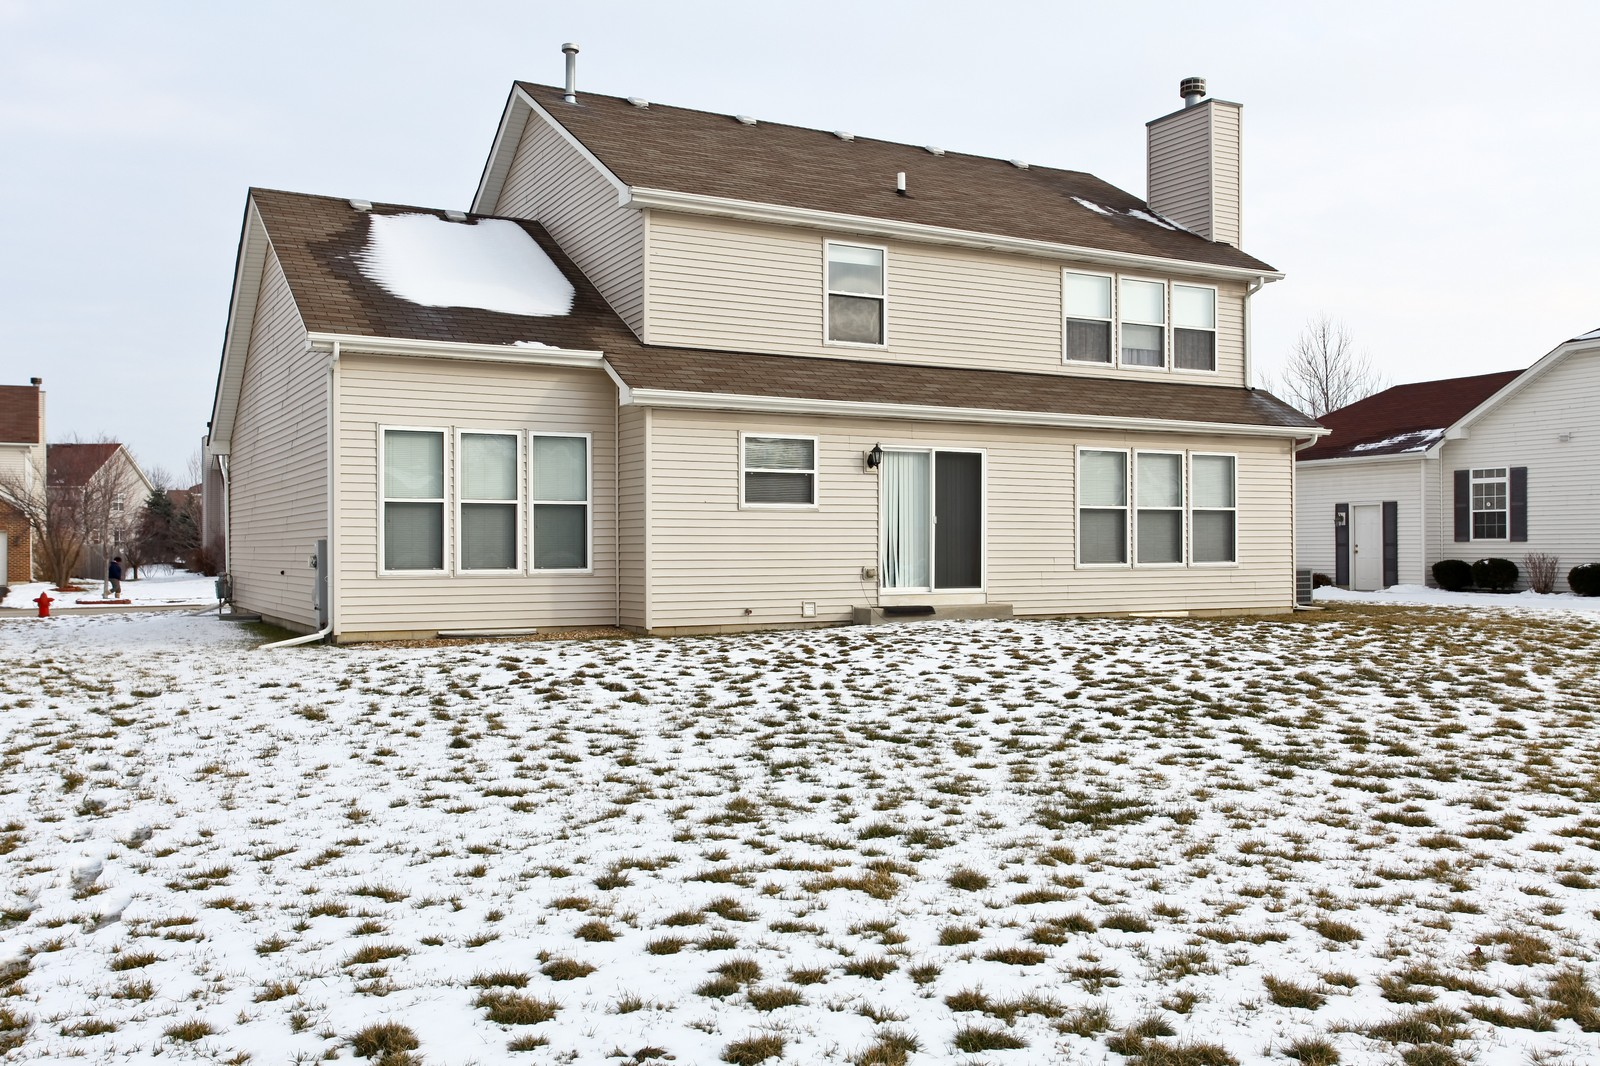 Real Estate Photography - 2025 Colonial Street, Aurora, IL, 60503 - Rear View